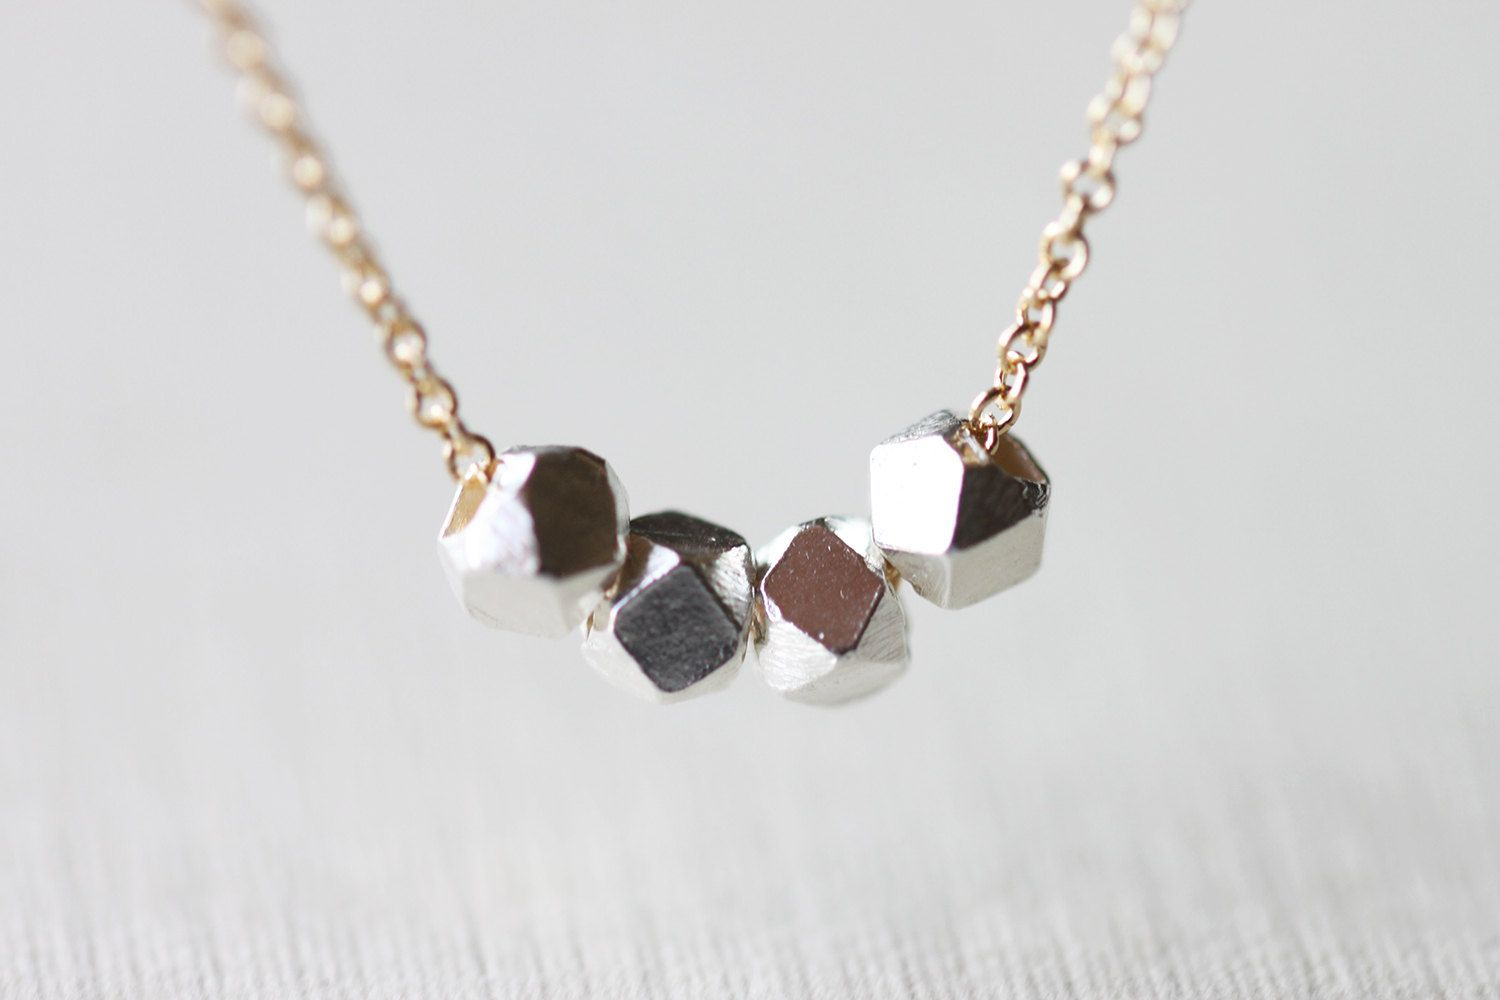 Sterling Silver Beads Necklace - gold and silver simple layering jewelry by petitor. $24.00, via Etsy.